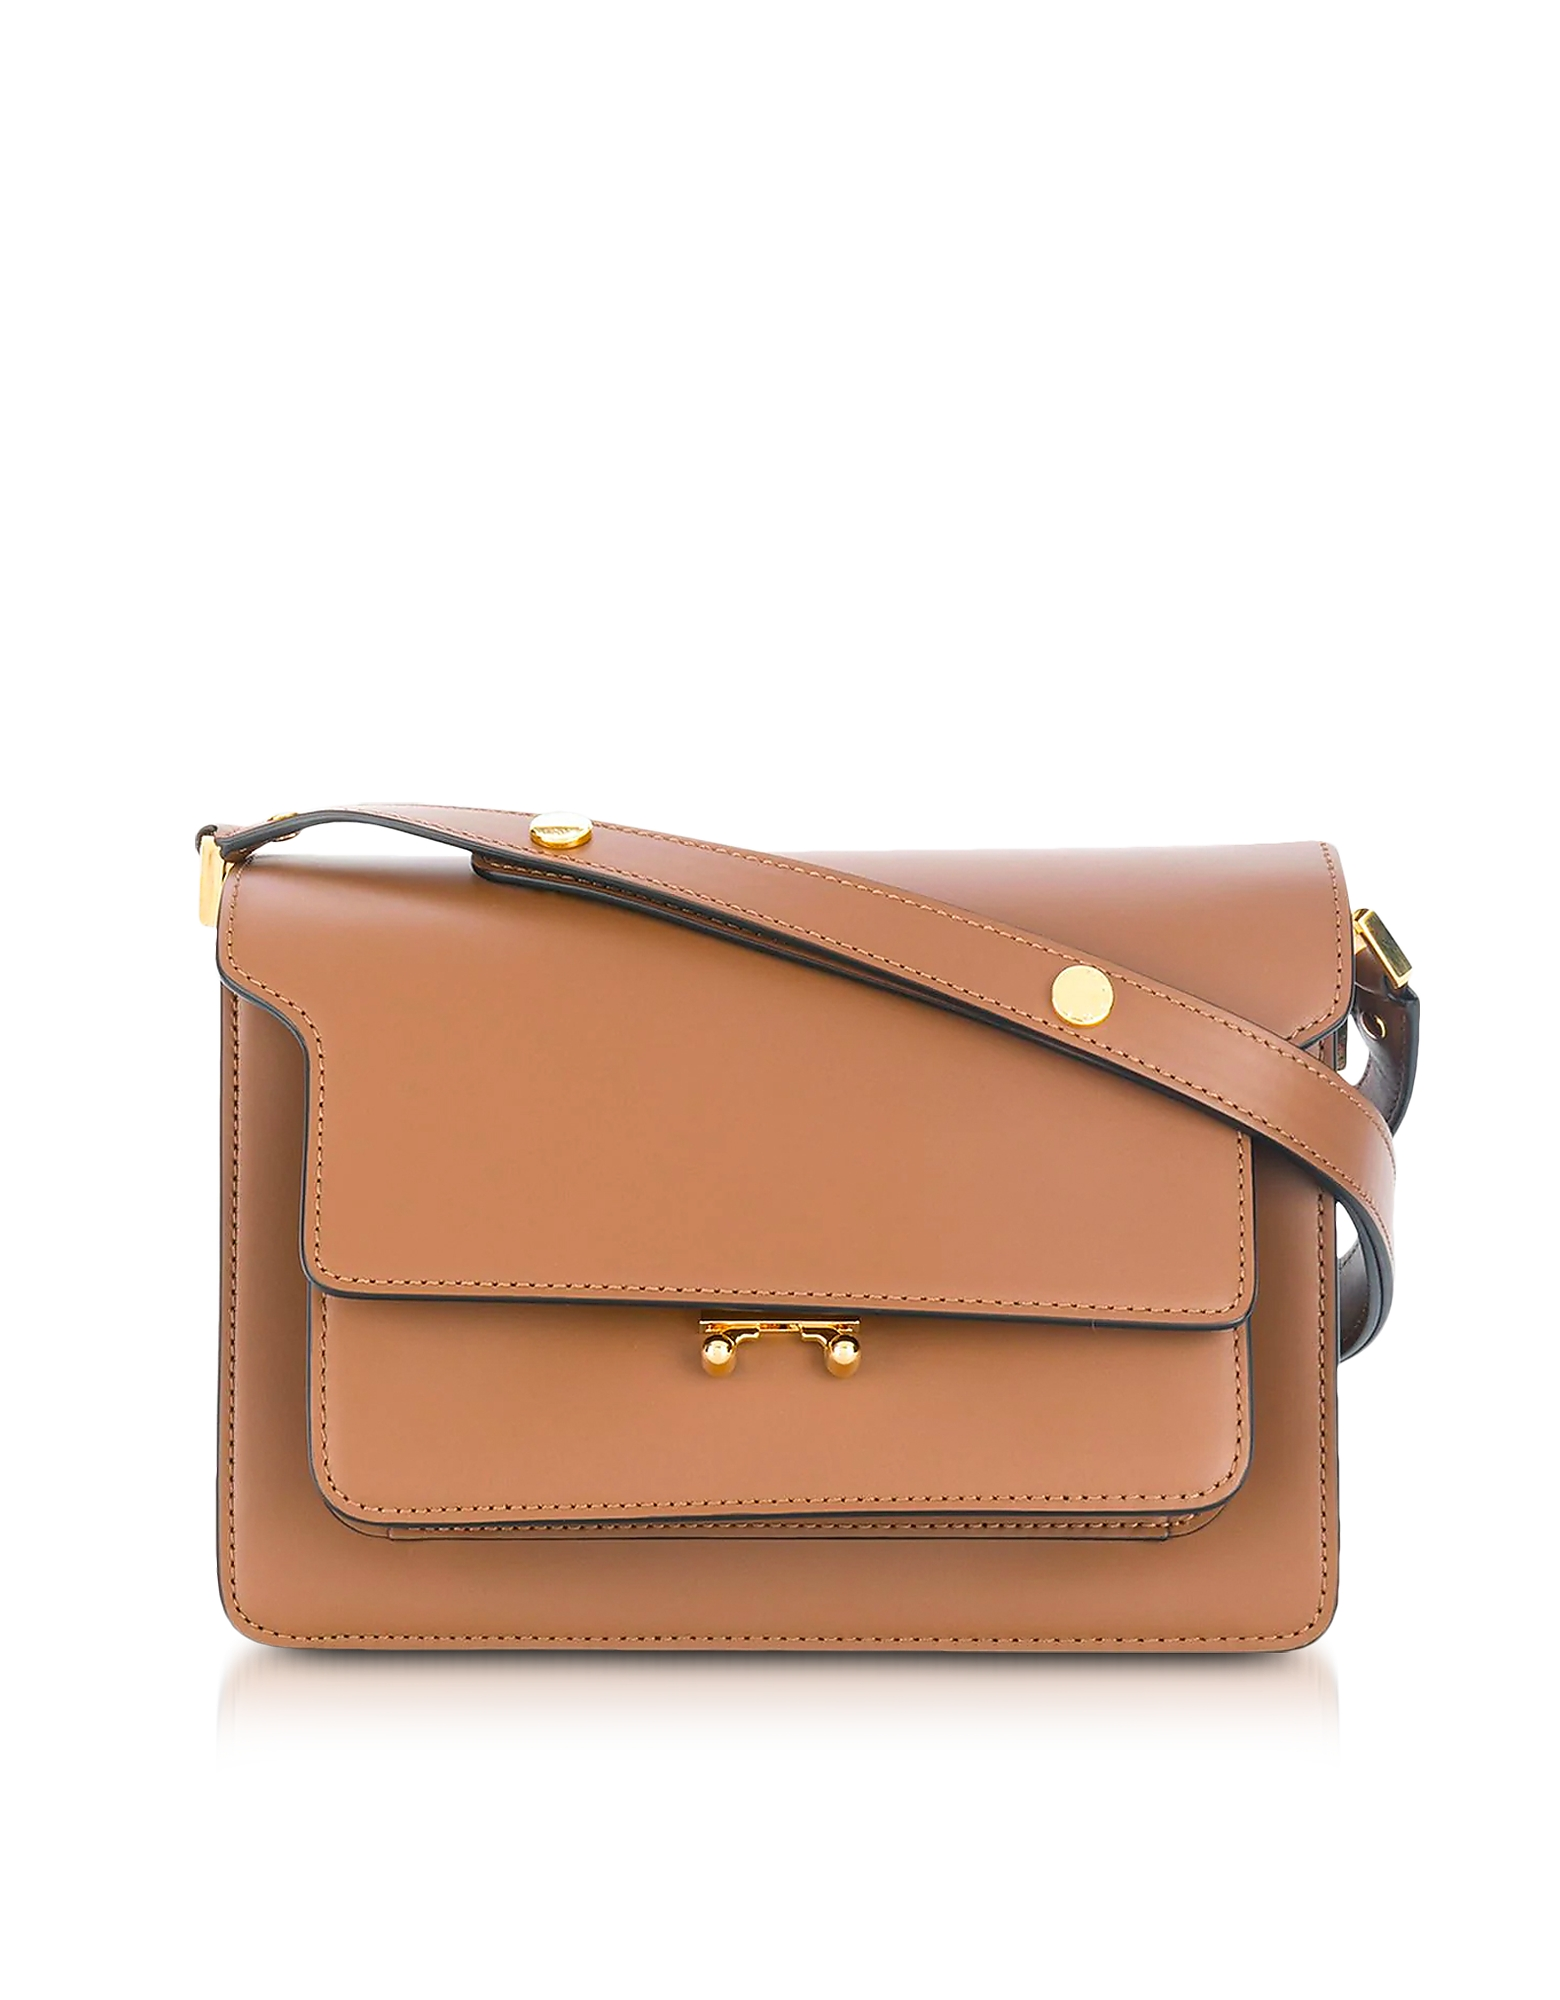 Marni Handbags, Gold Brown Leather Trunk Shoulder Bag